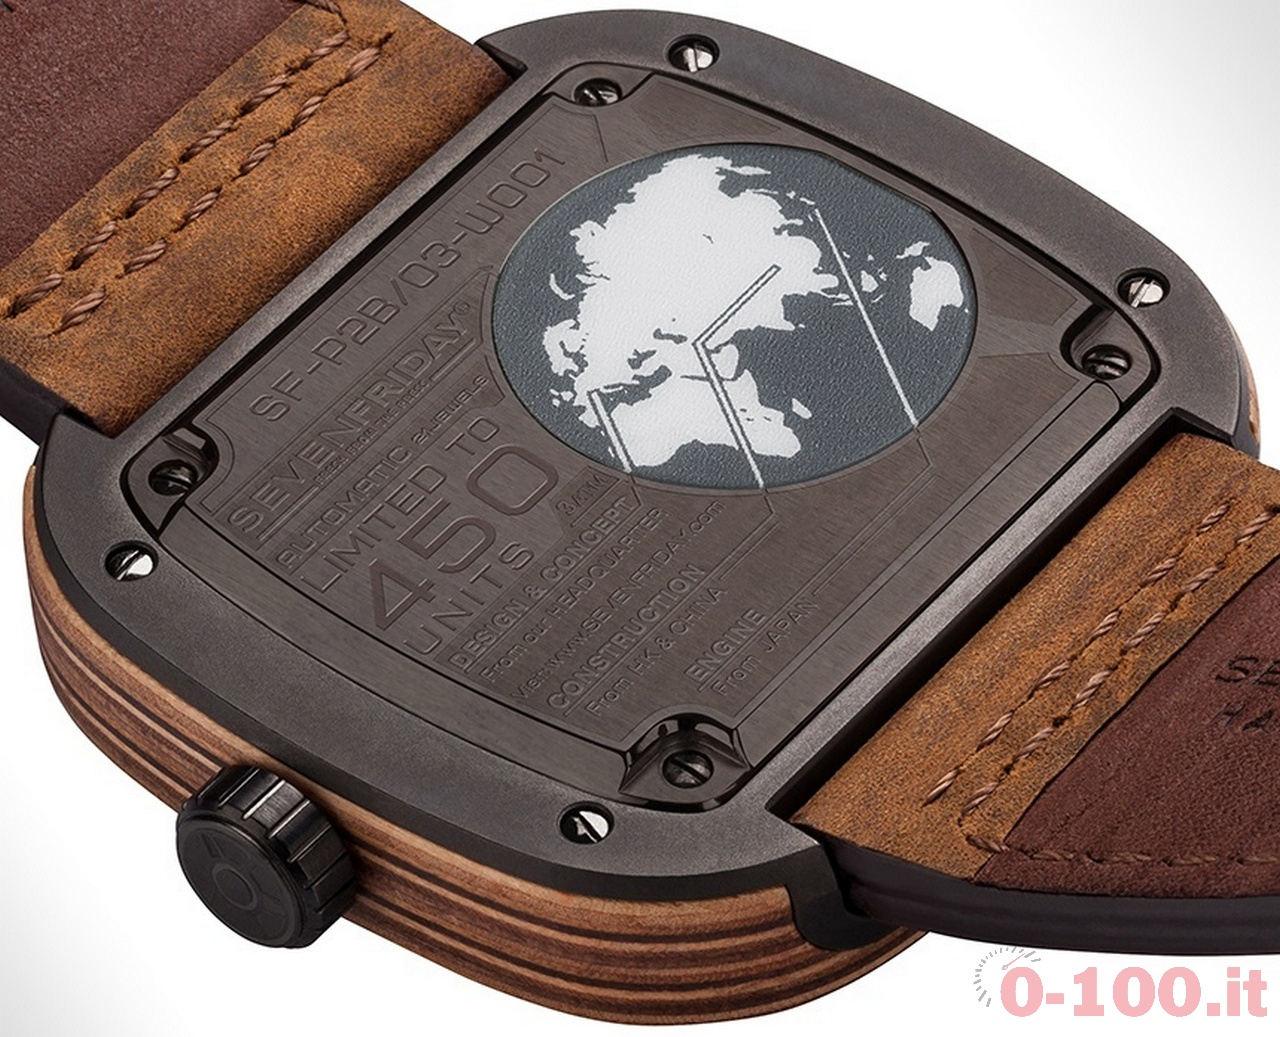 sevenfriday-p2b03-woody-limited-edition-price-prezzo_0-1008